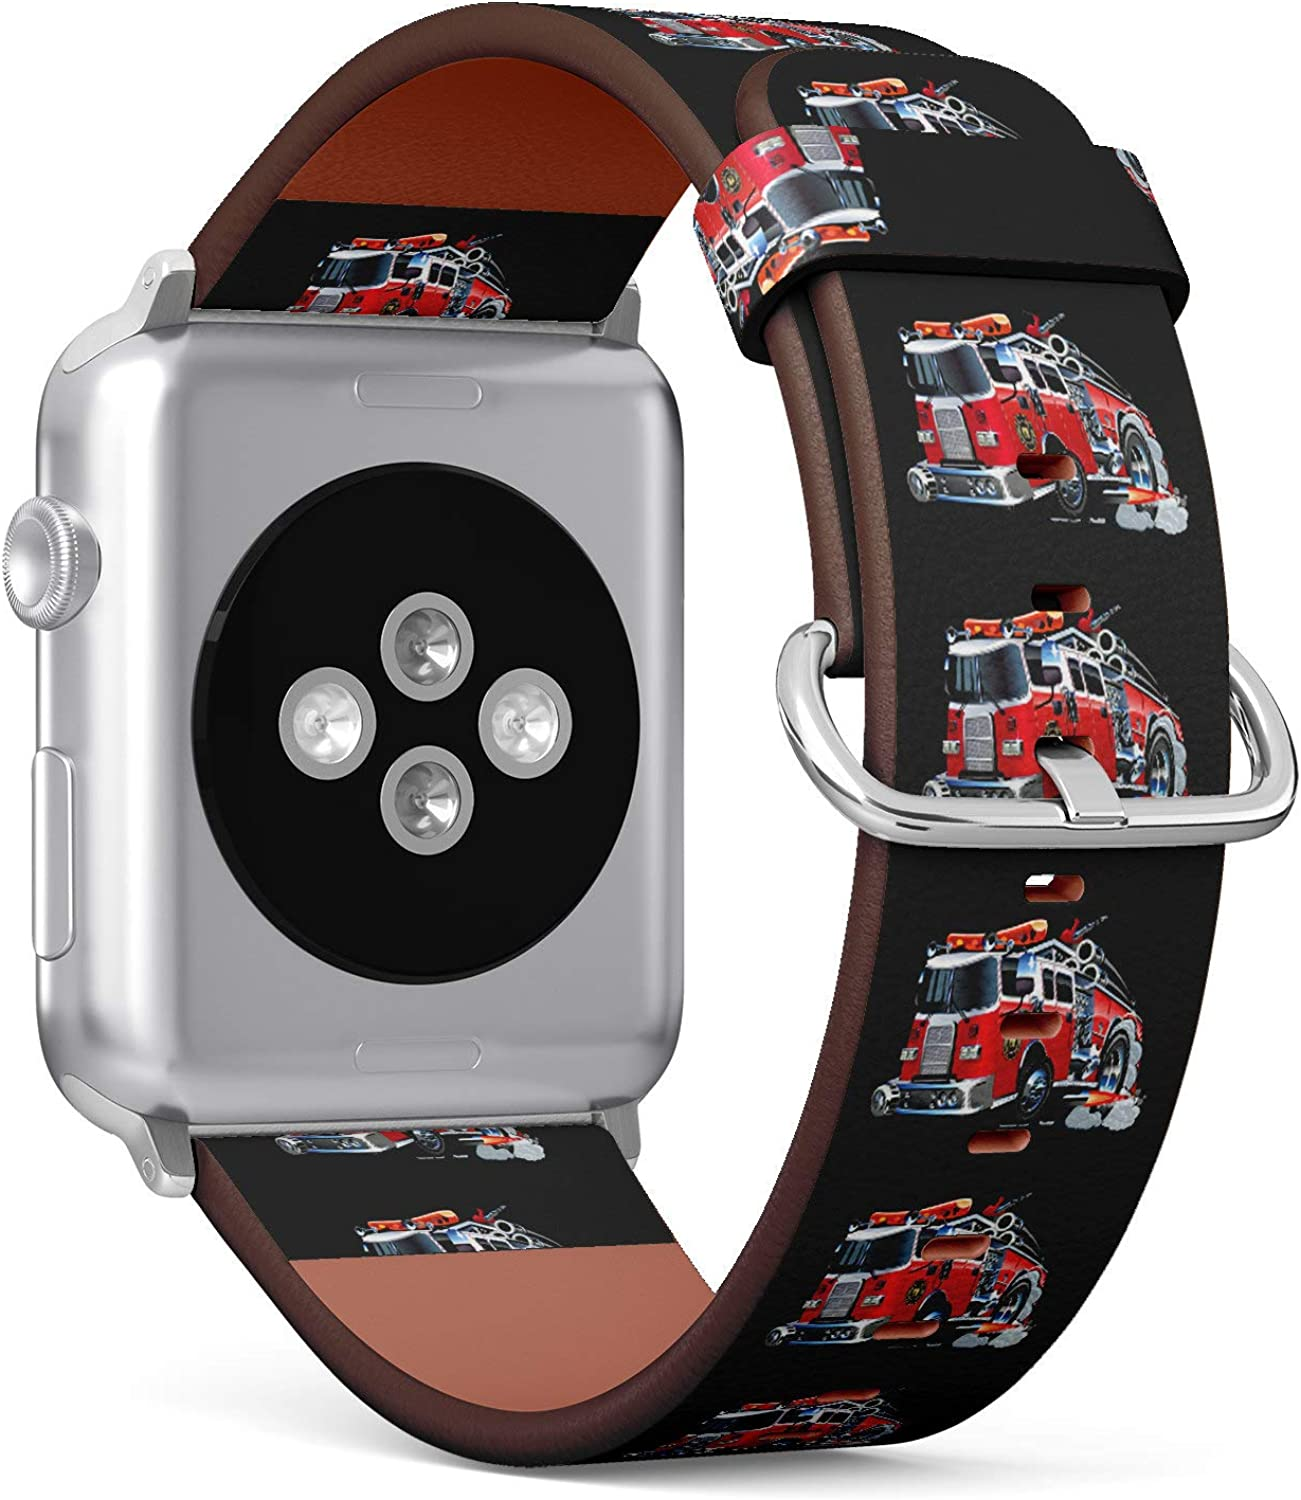 (Cartoon Firefighter Truck) Patterned Leather Wristband Strap for Apple Watch Series 4/3/2/1 gen,Replacement for iWatch 38mm / 40mm Bands